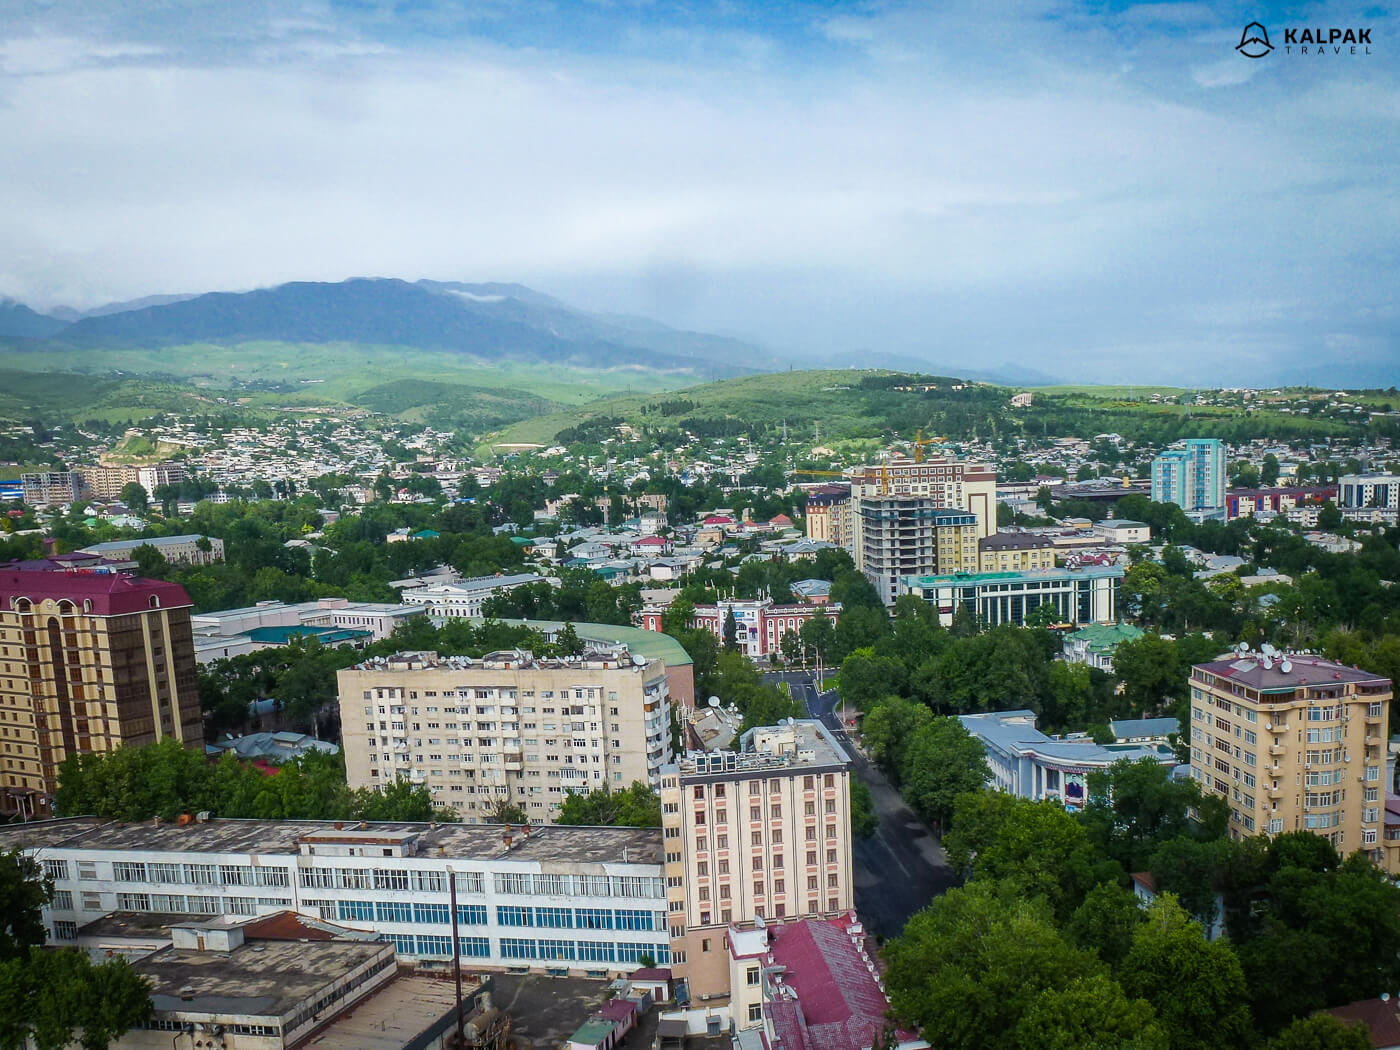 Dushanbe view of the city from above